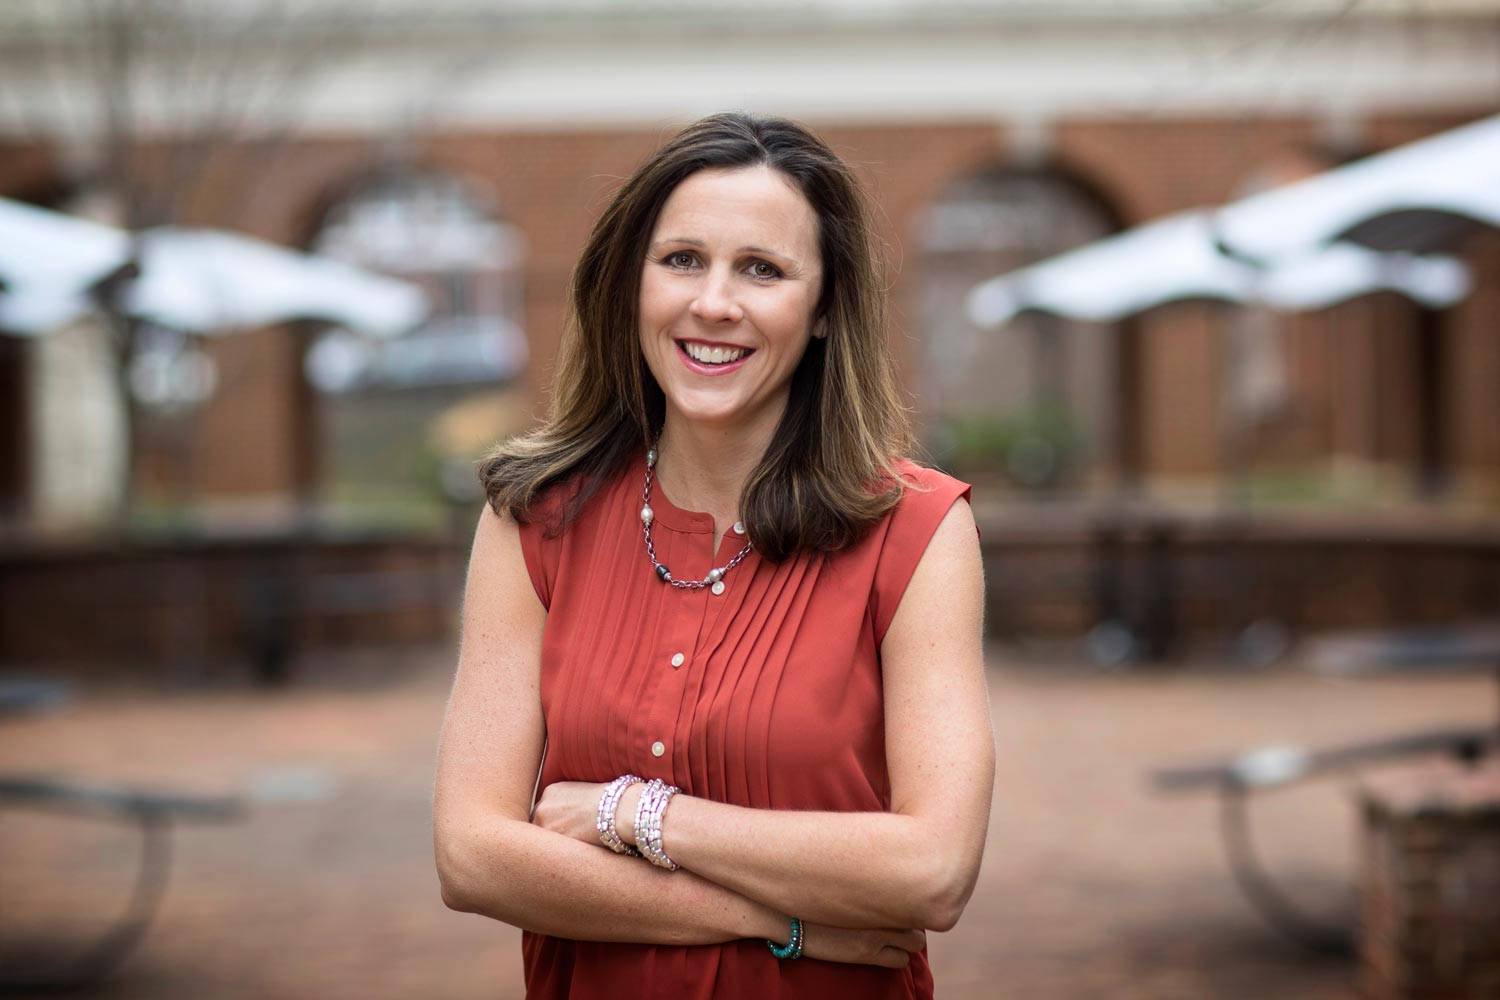 Curry School professor Catherine Bradshaw's research asked if security cameras in schools made students feel safer. She found mixed results.